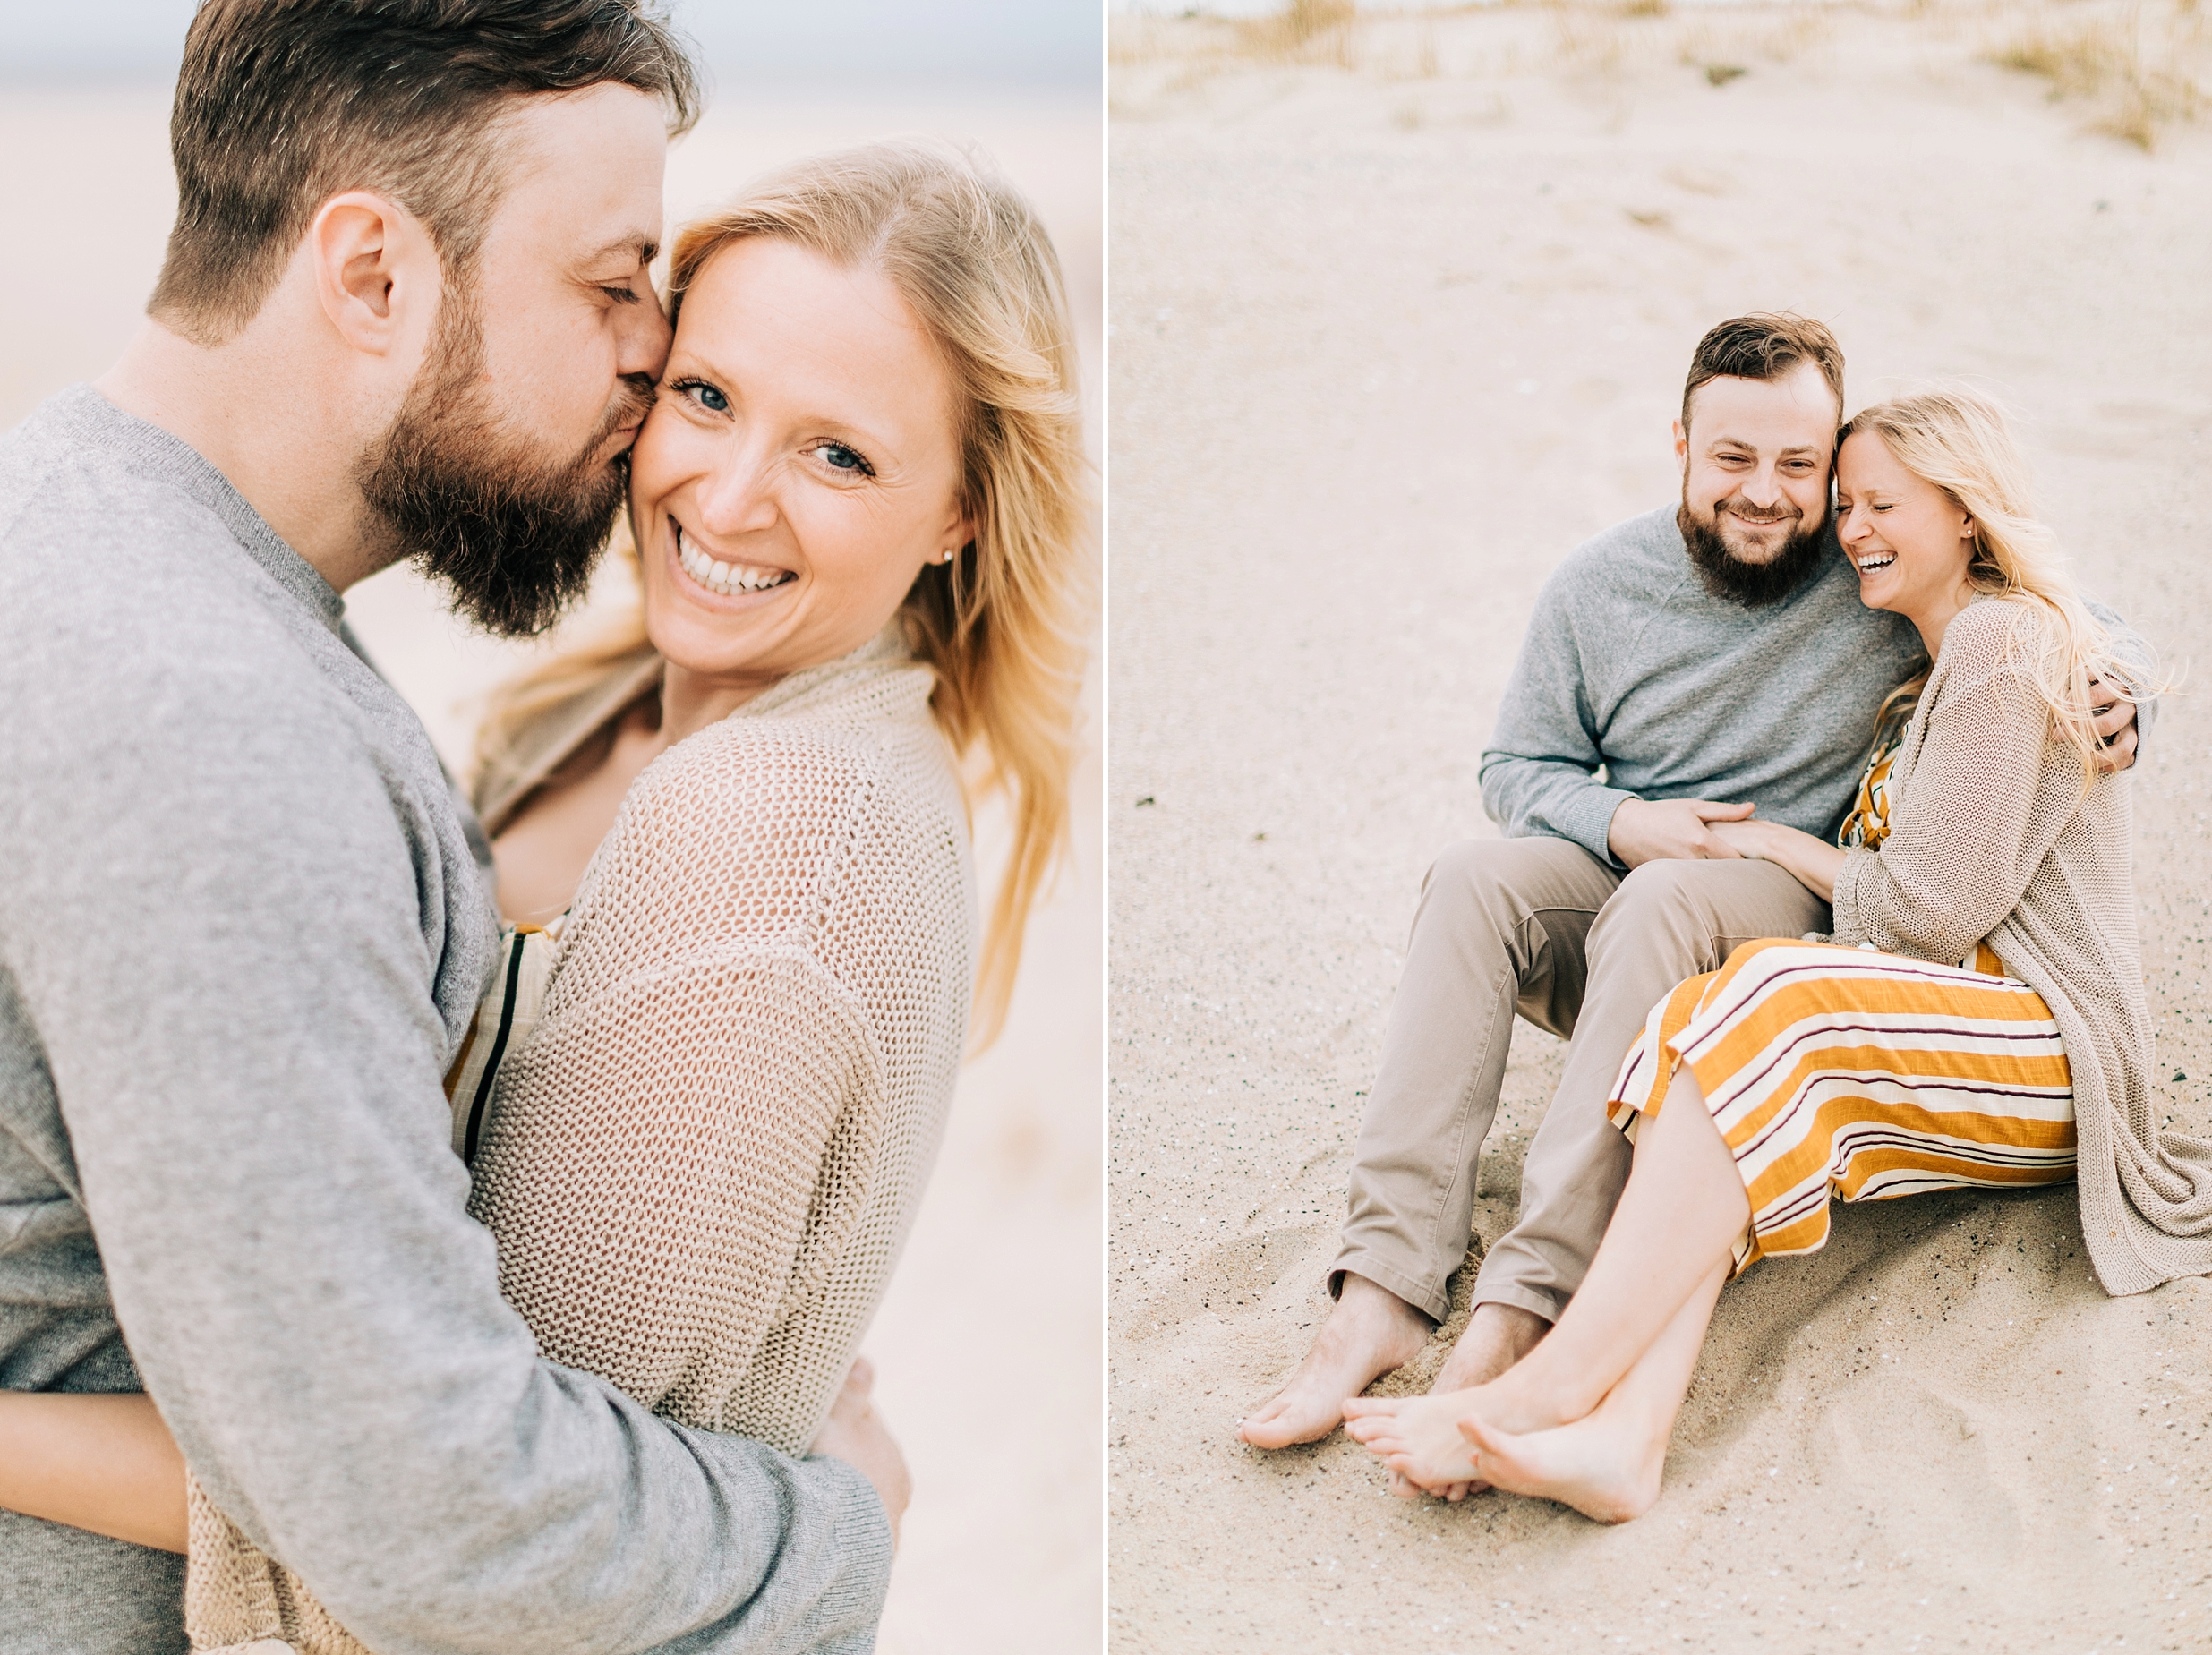 cloudy-engagement-sandy-hook-nj-asbury-photographer_0022.jpg